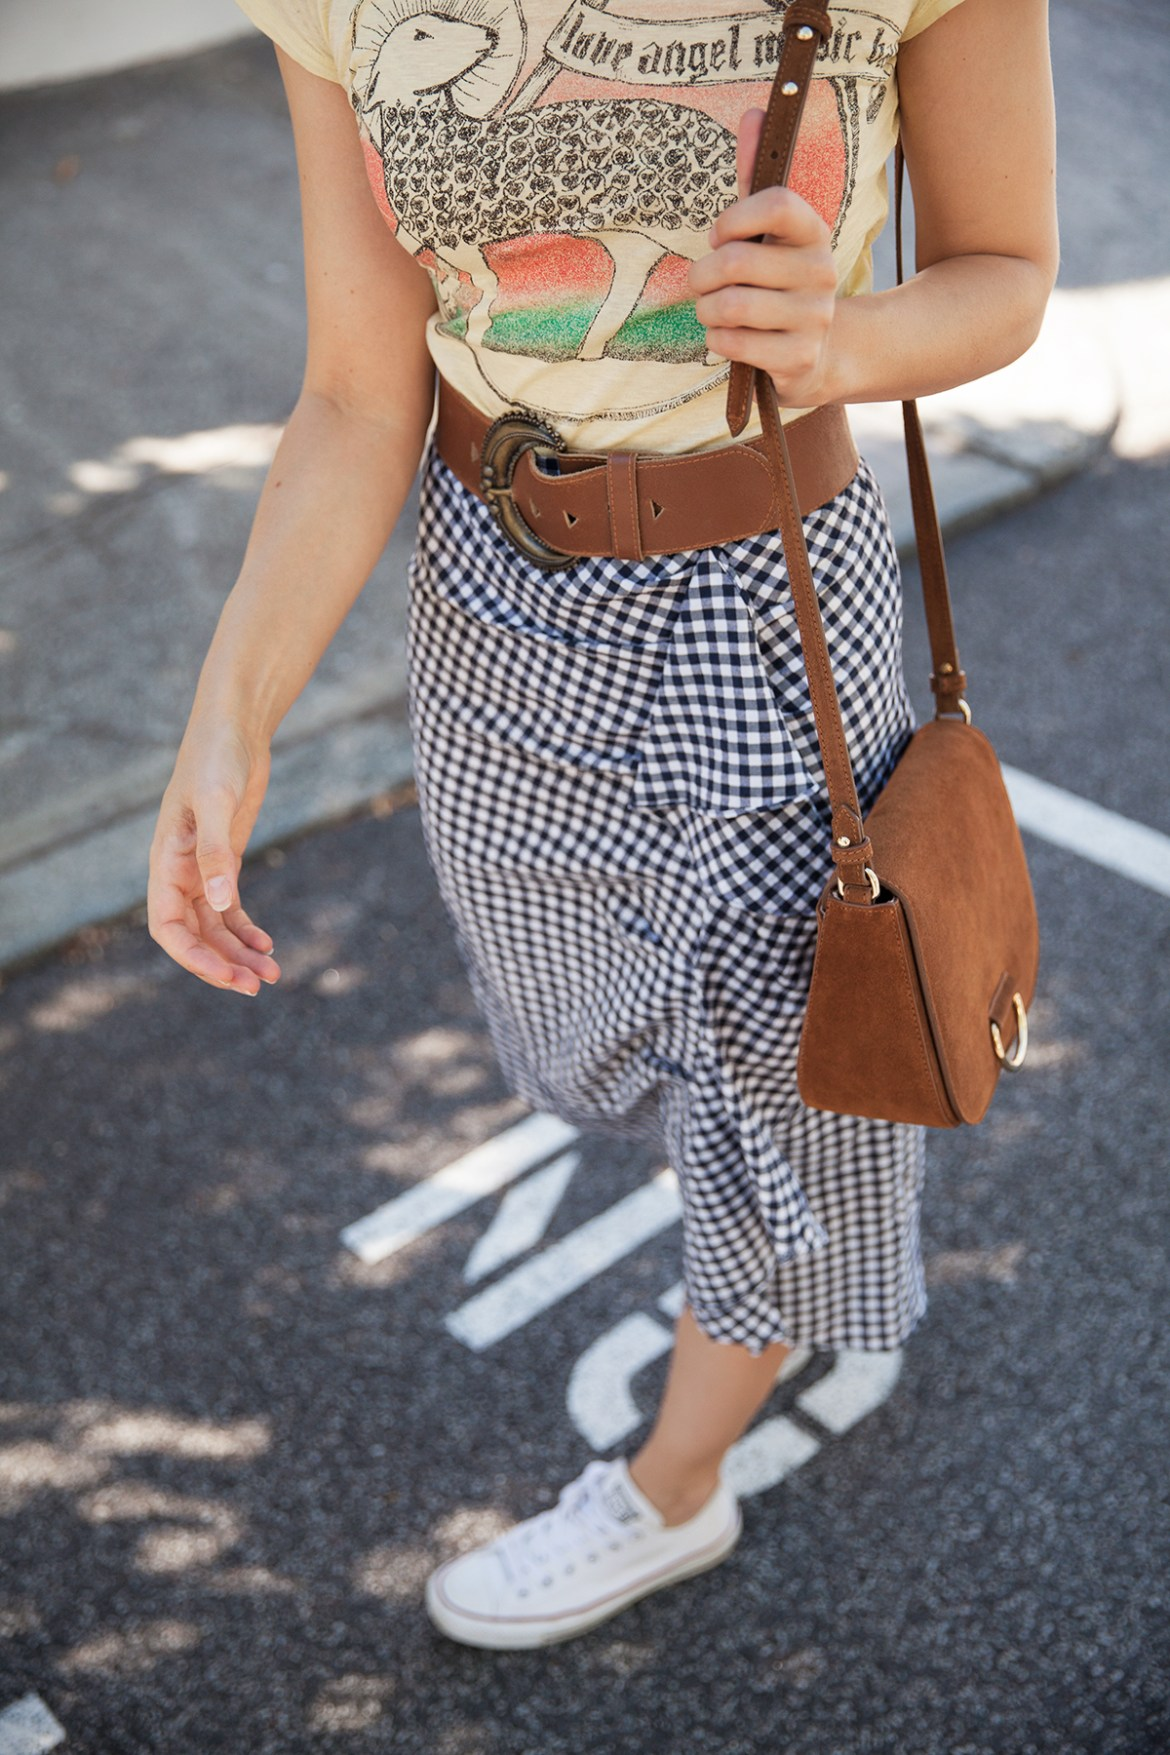 Inspiring Wit fashion blogger from Australia in Topshop gingham ruffle skirt for spring 2017 and suede Little Liffner bag